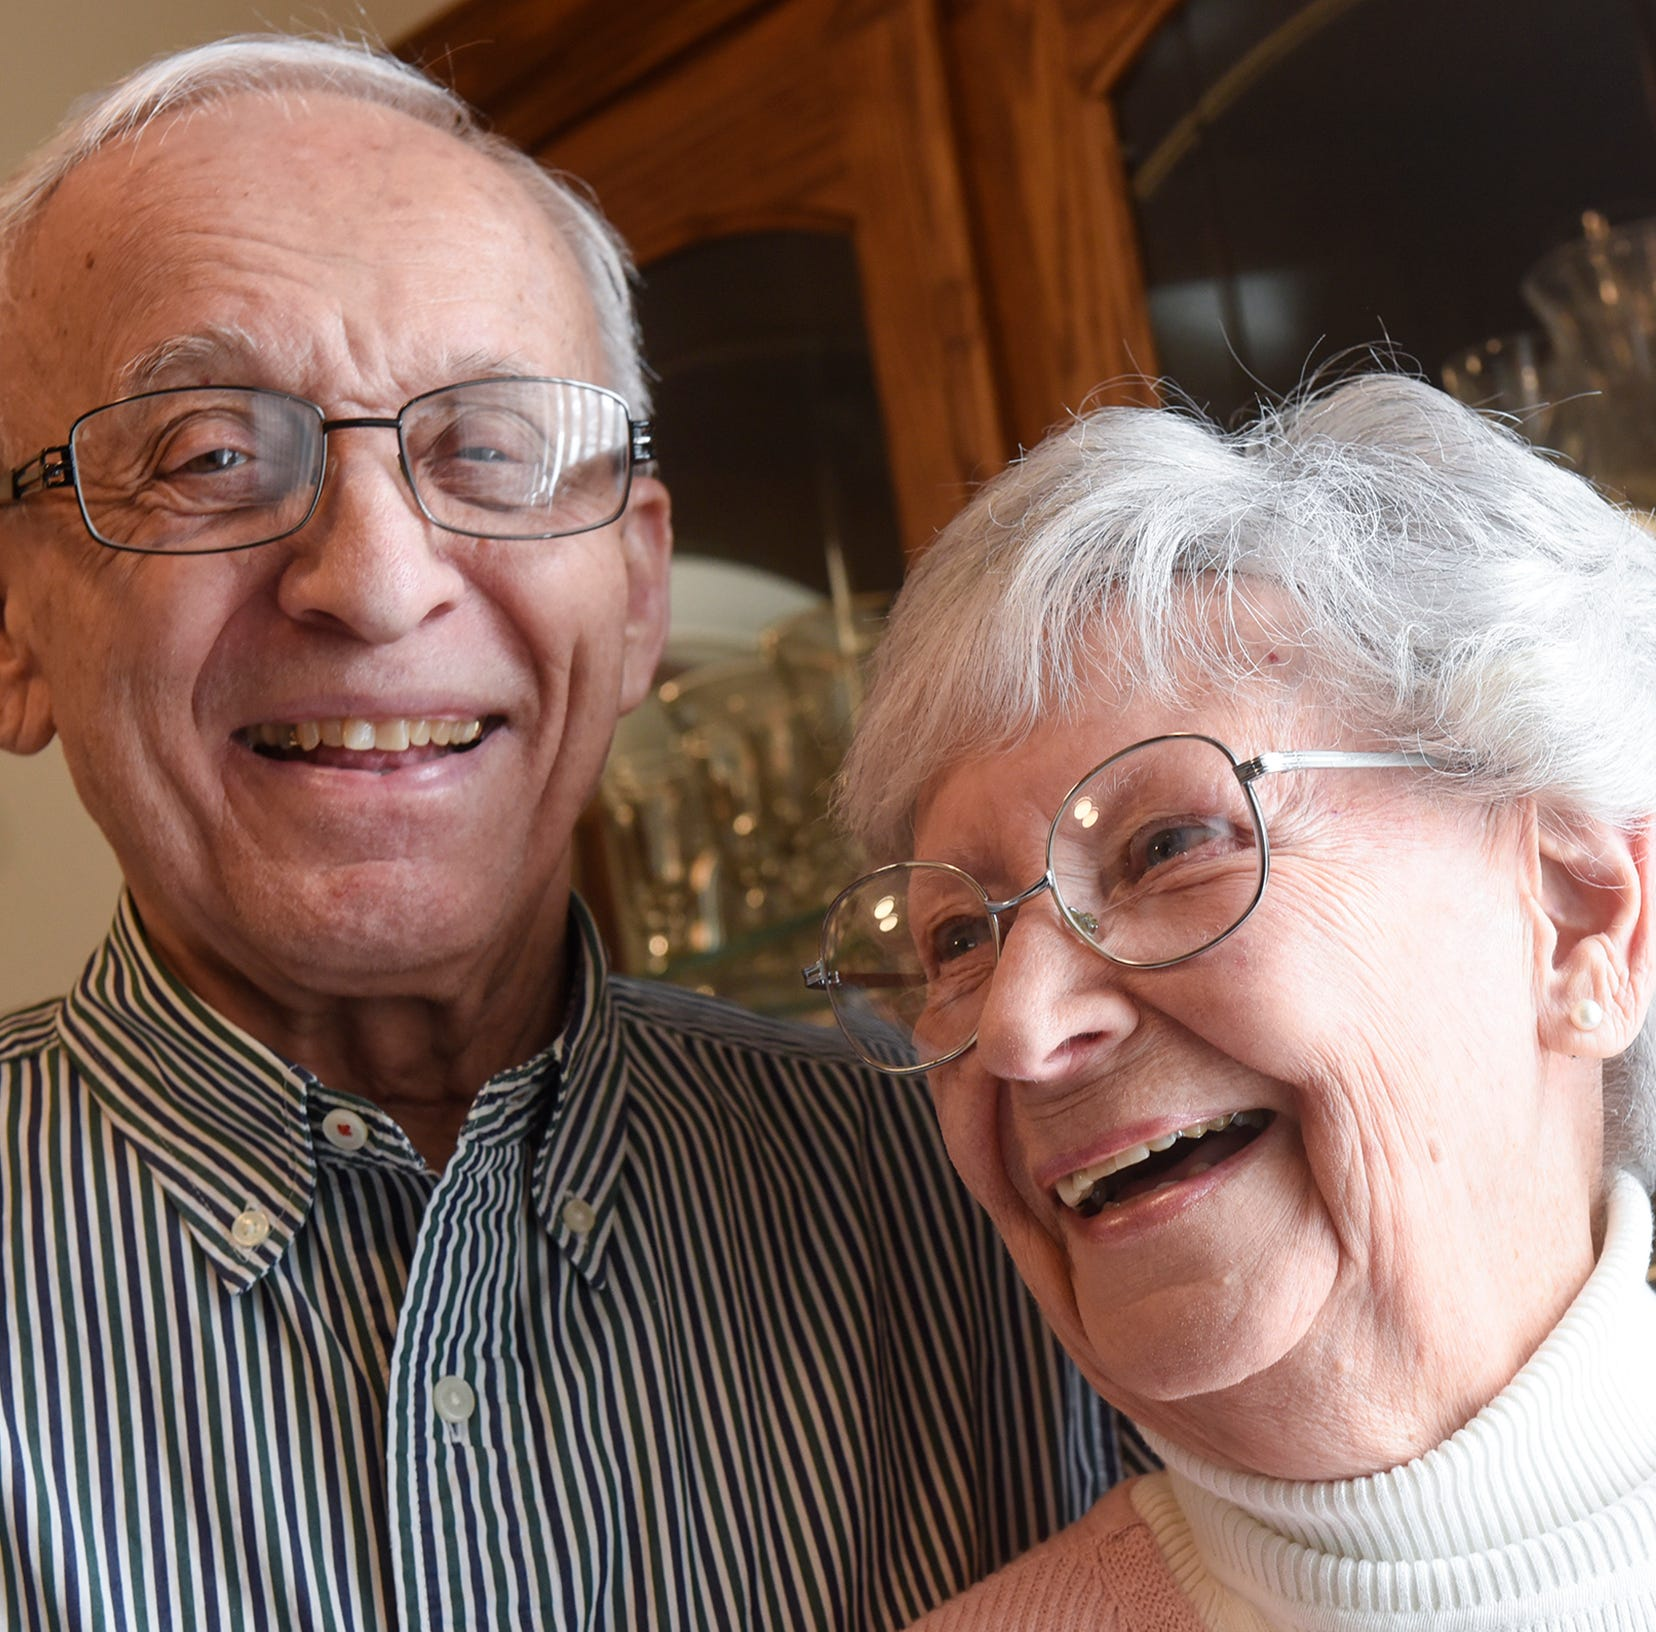 'It took me 60 years to land her:' School-age almost-sweethearts find each other after decades